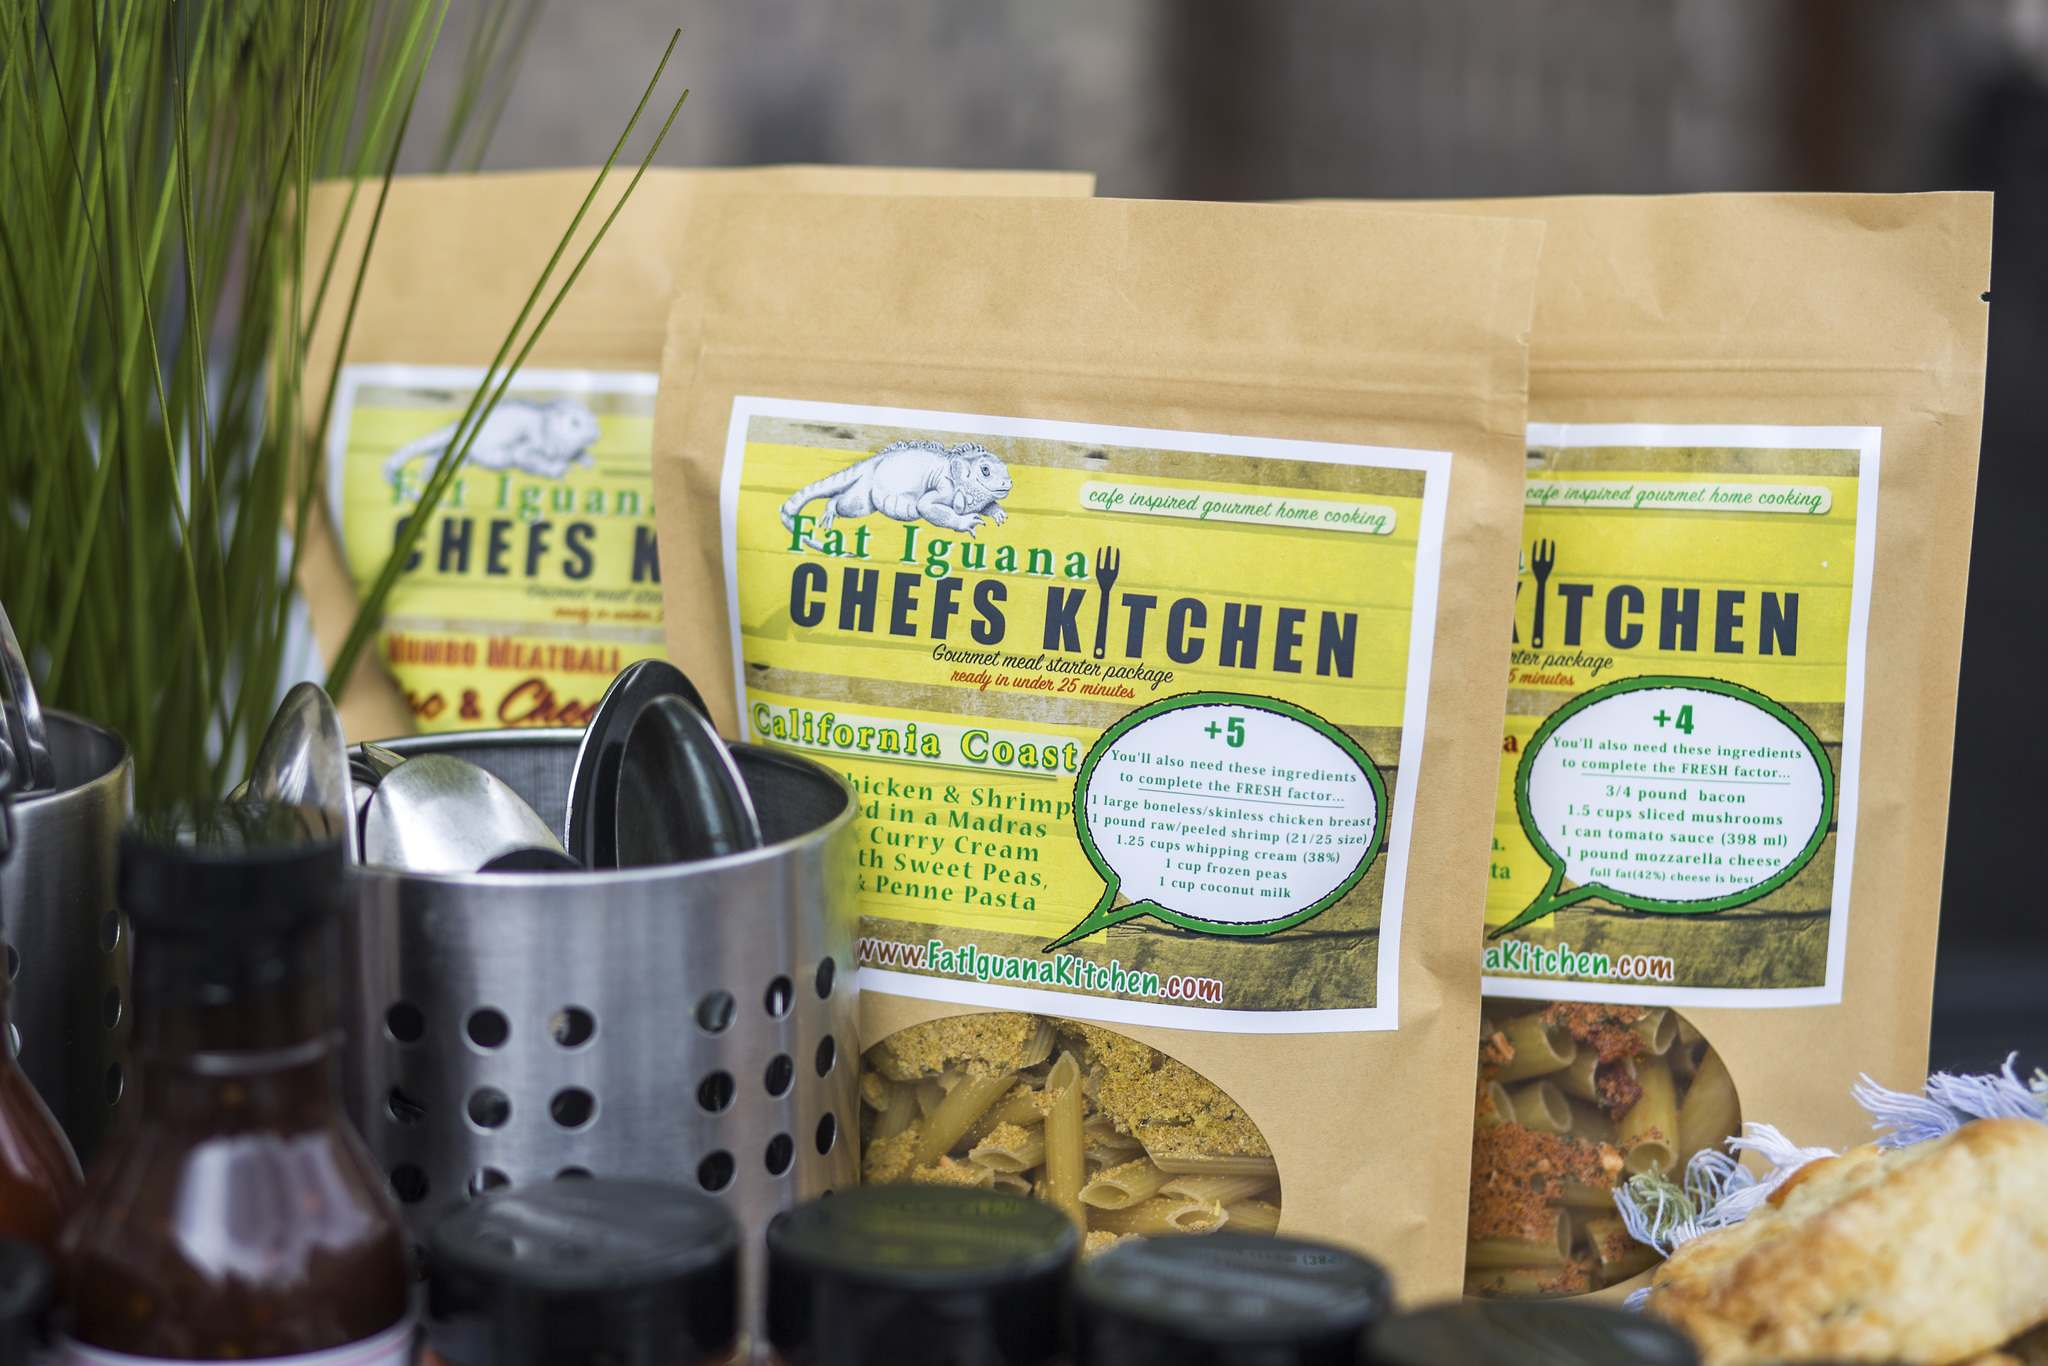 A selection of Fat Iguana Chef's Kitchen's meal-starter kits.